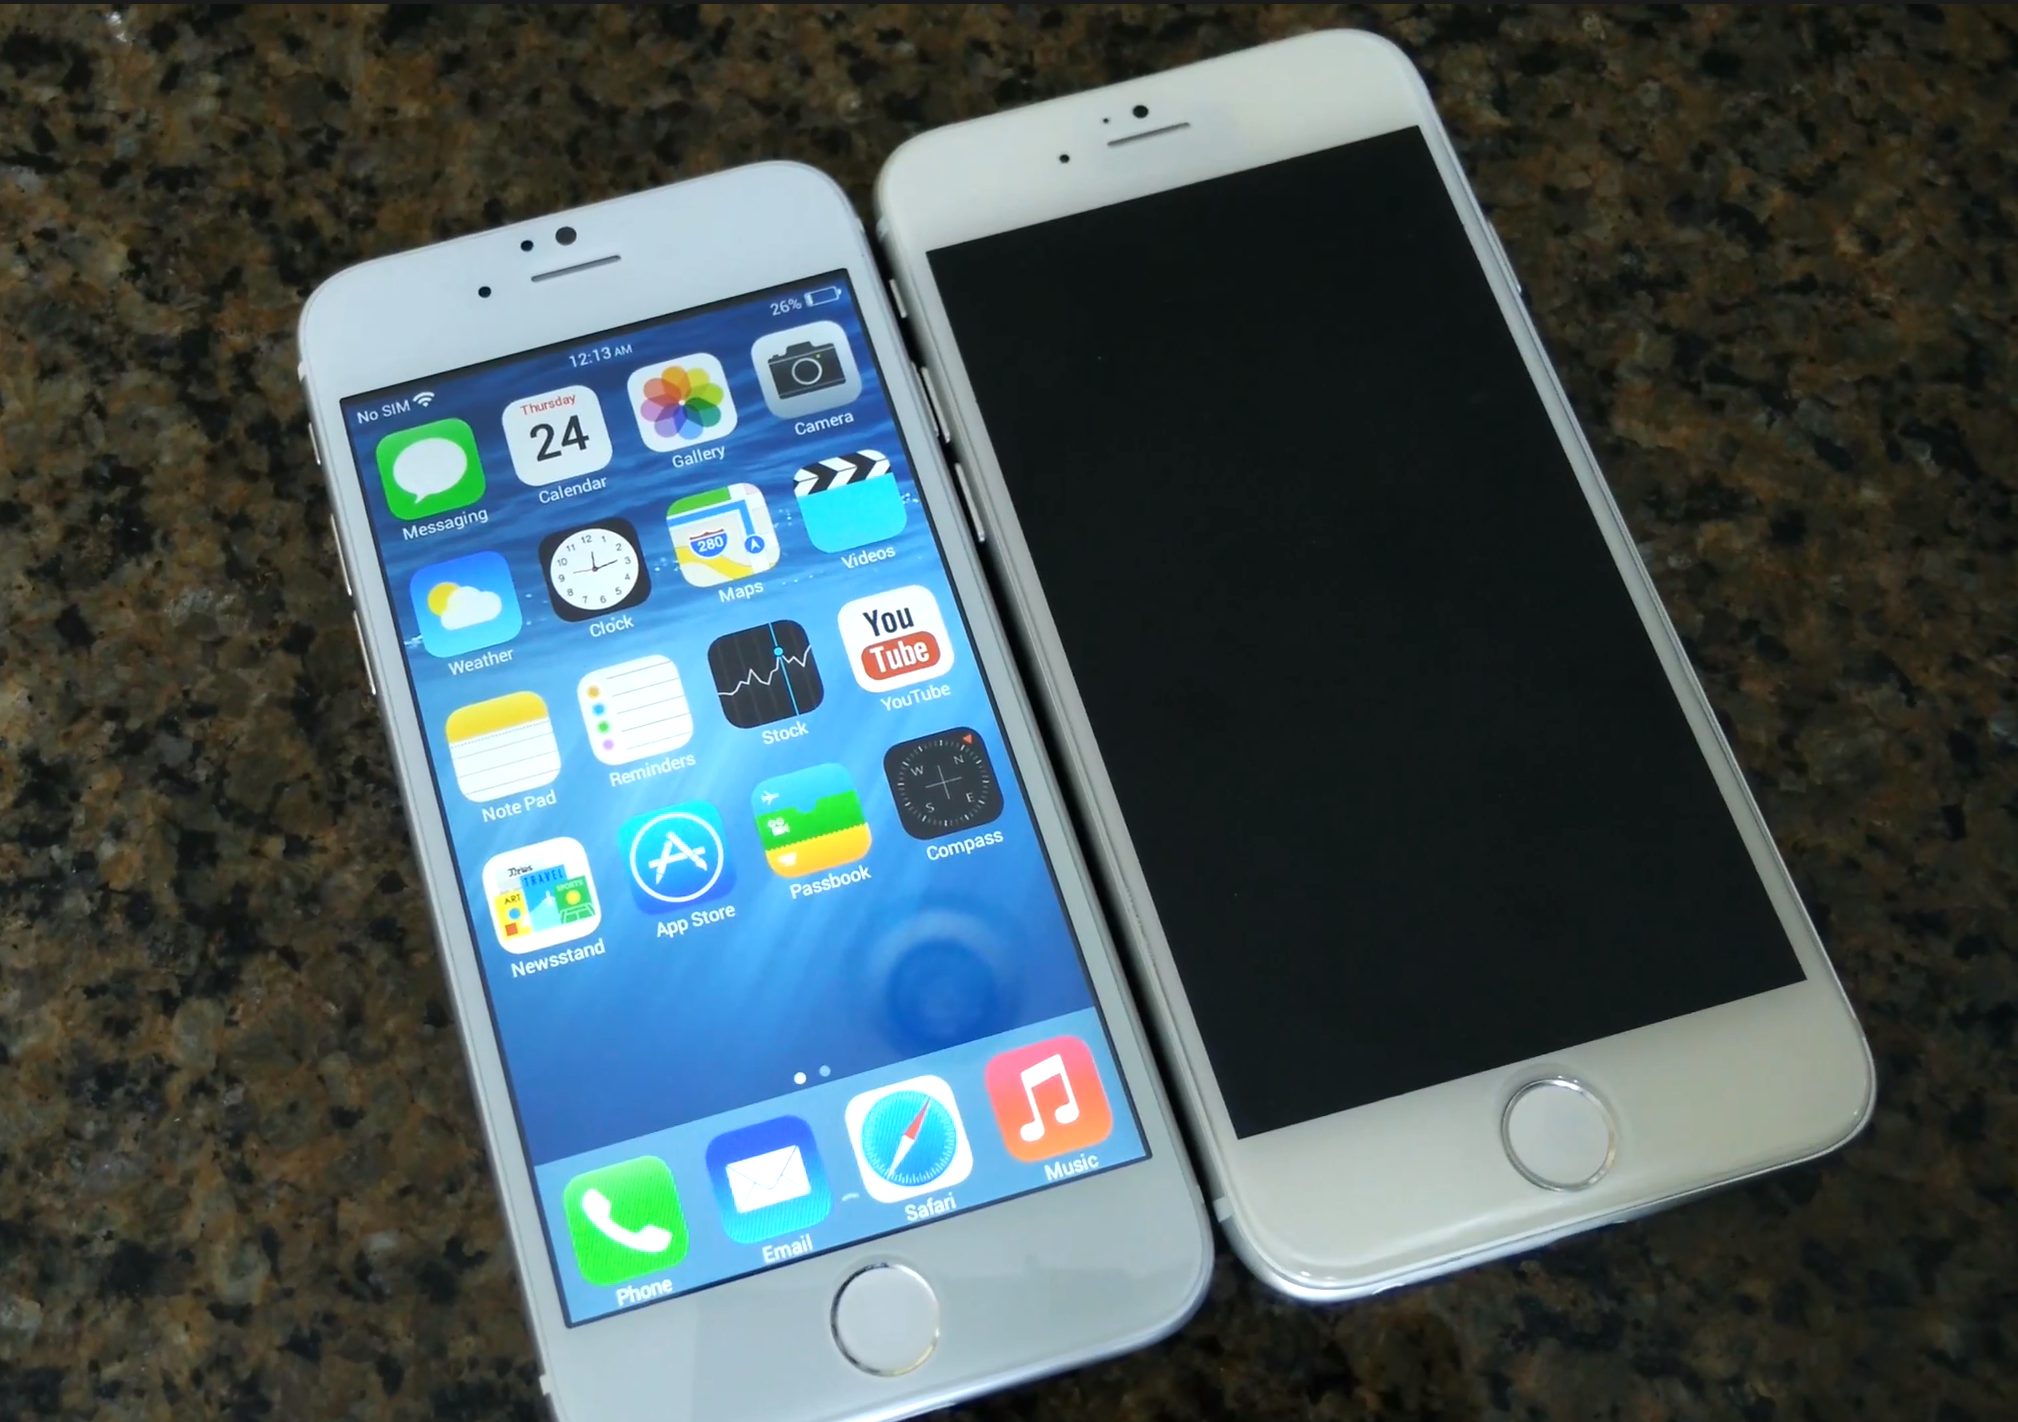 Hands-on with a functional 4 7-inch iPhone 6 clone